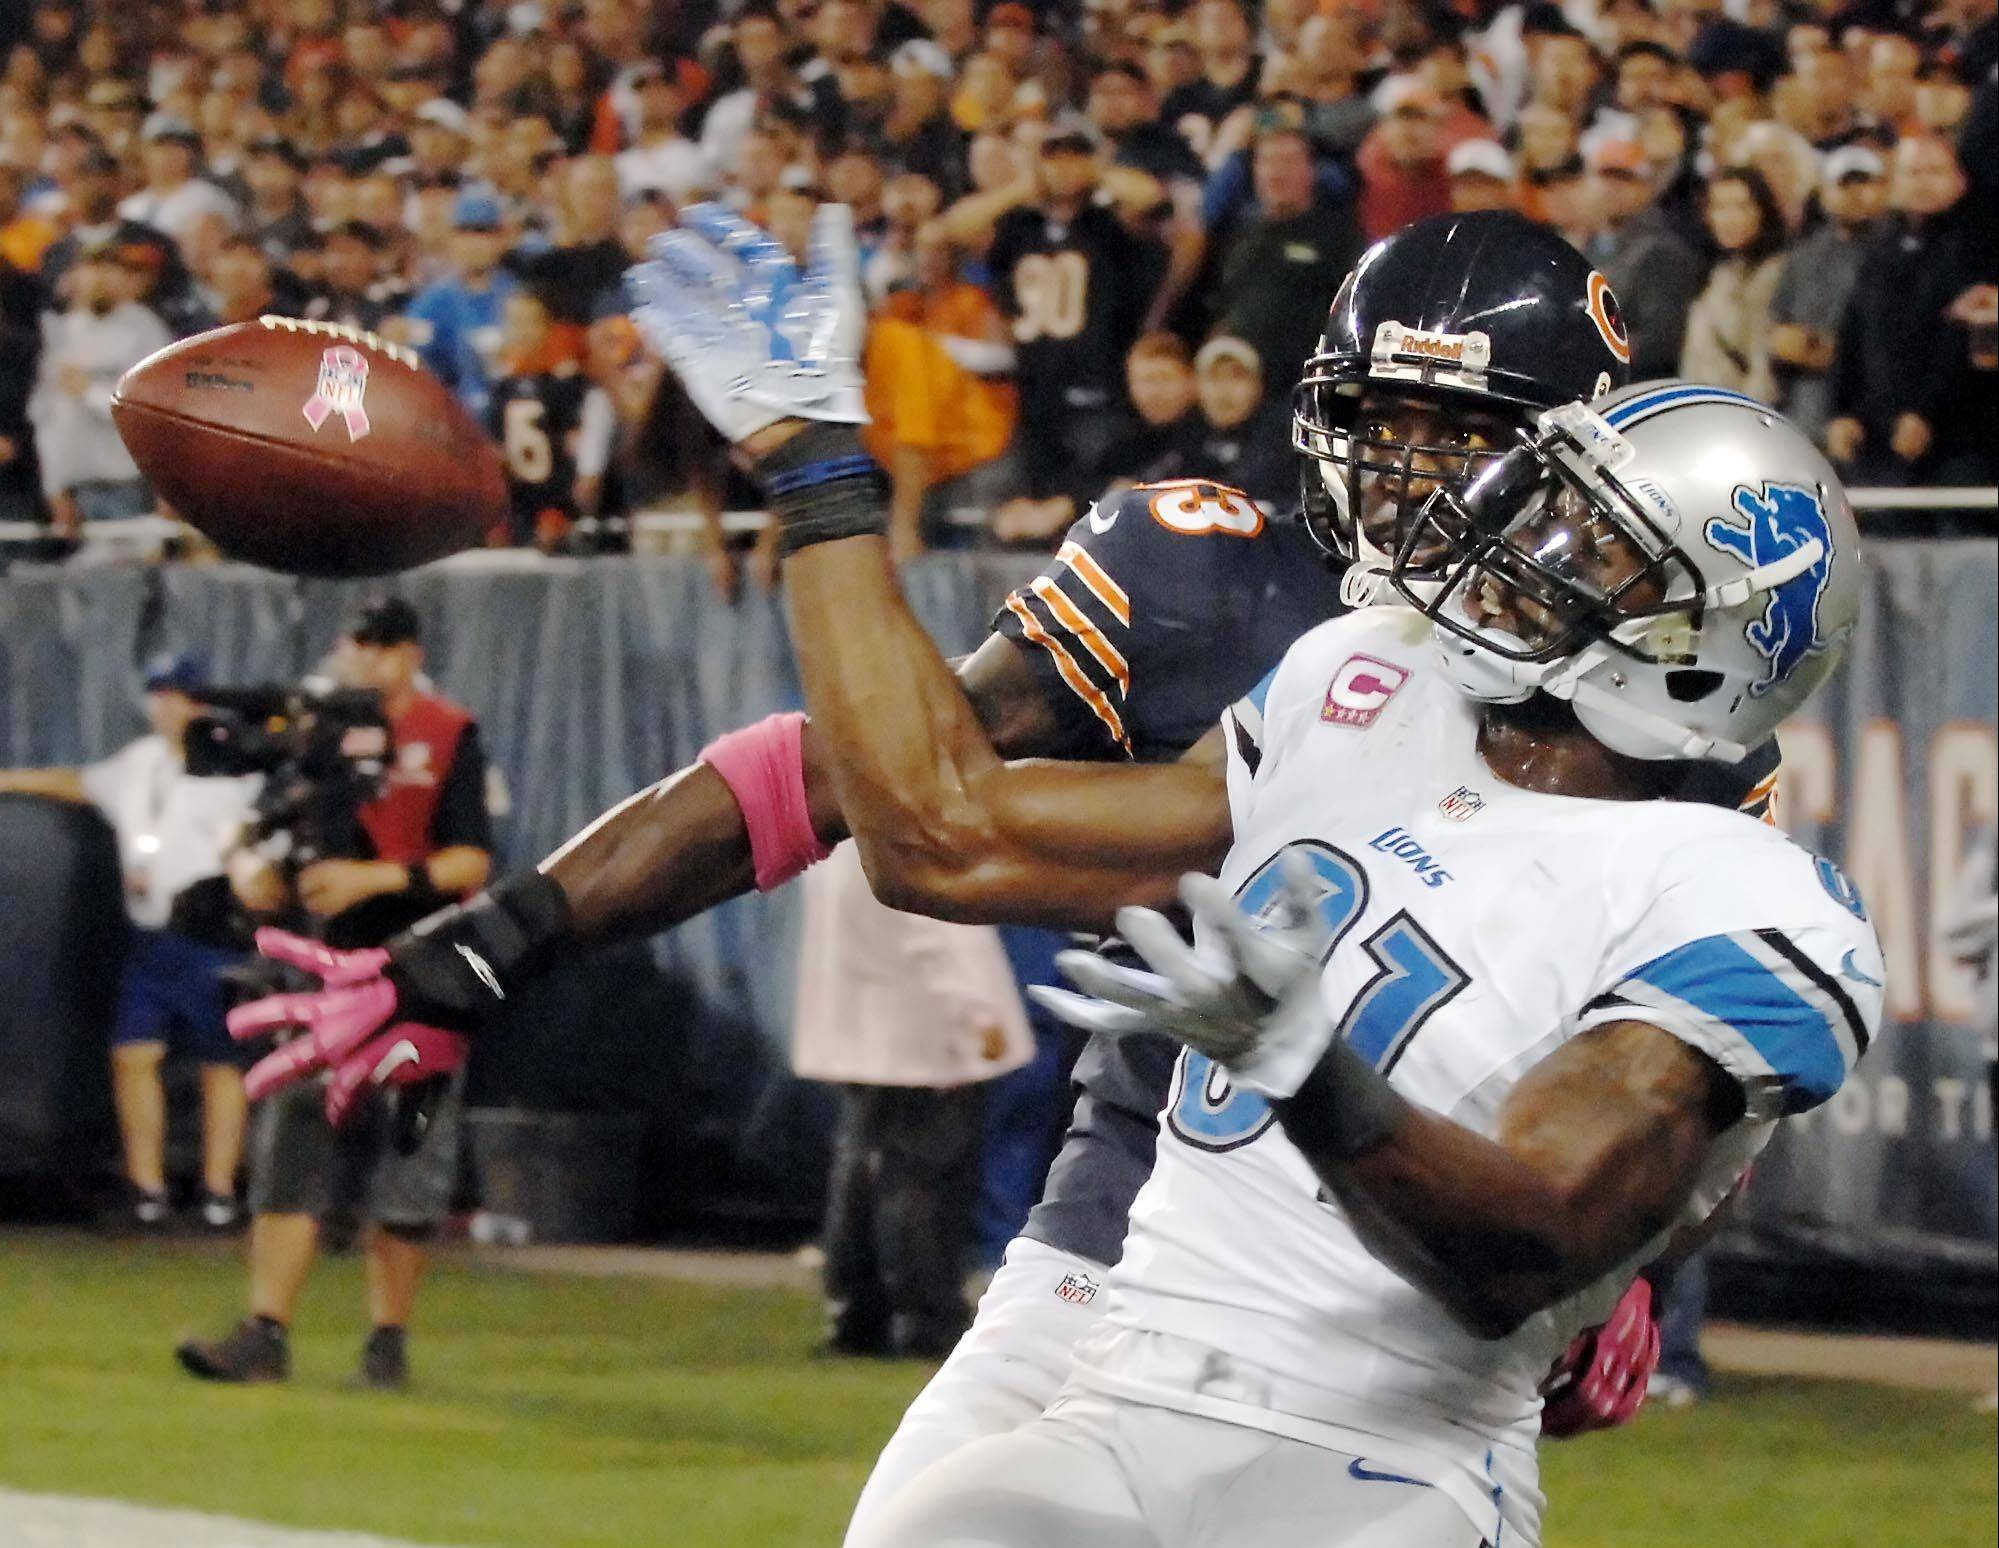 Charles Tillman knocks the ball away form Calvin Johnson in the end zone during a game in 2012. Johnson caught just 8 passes for 106 yards in two games against the Bears last season.